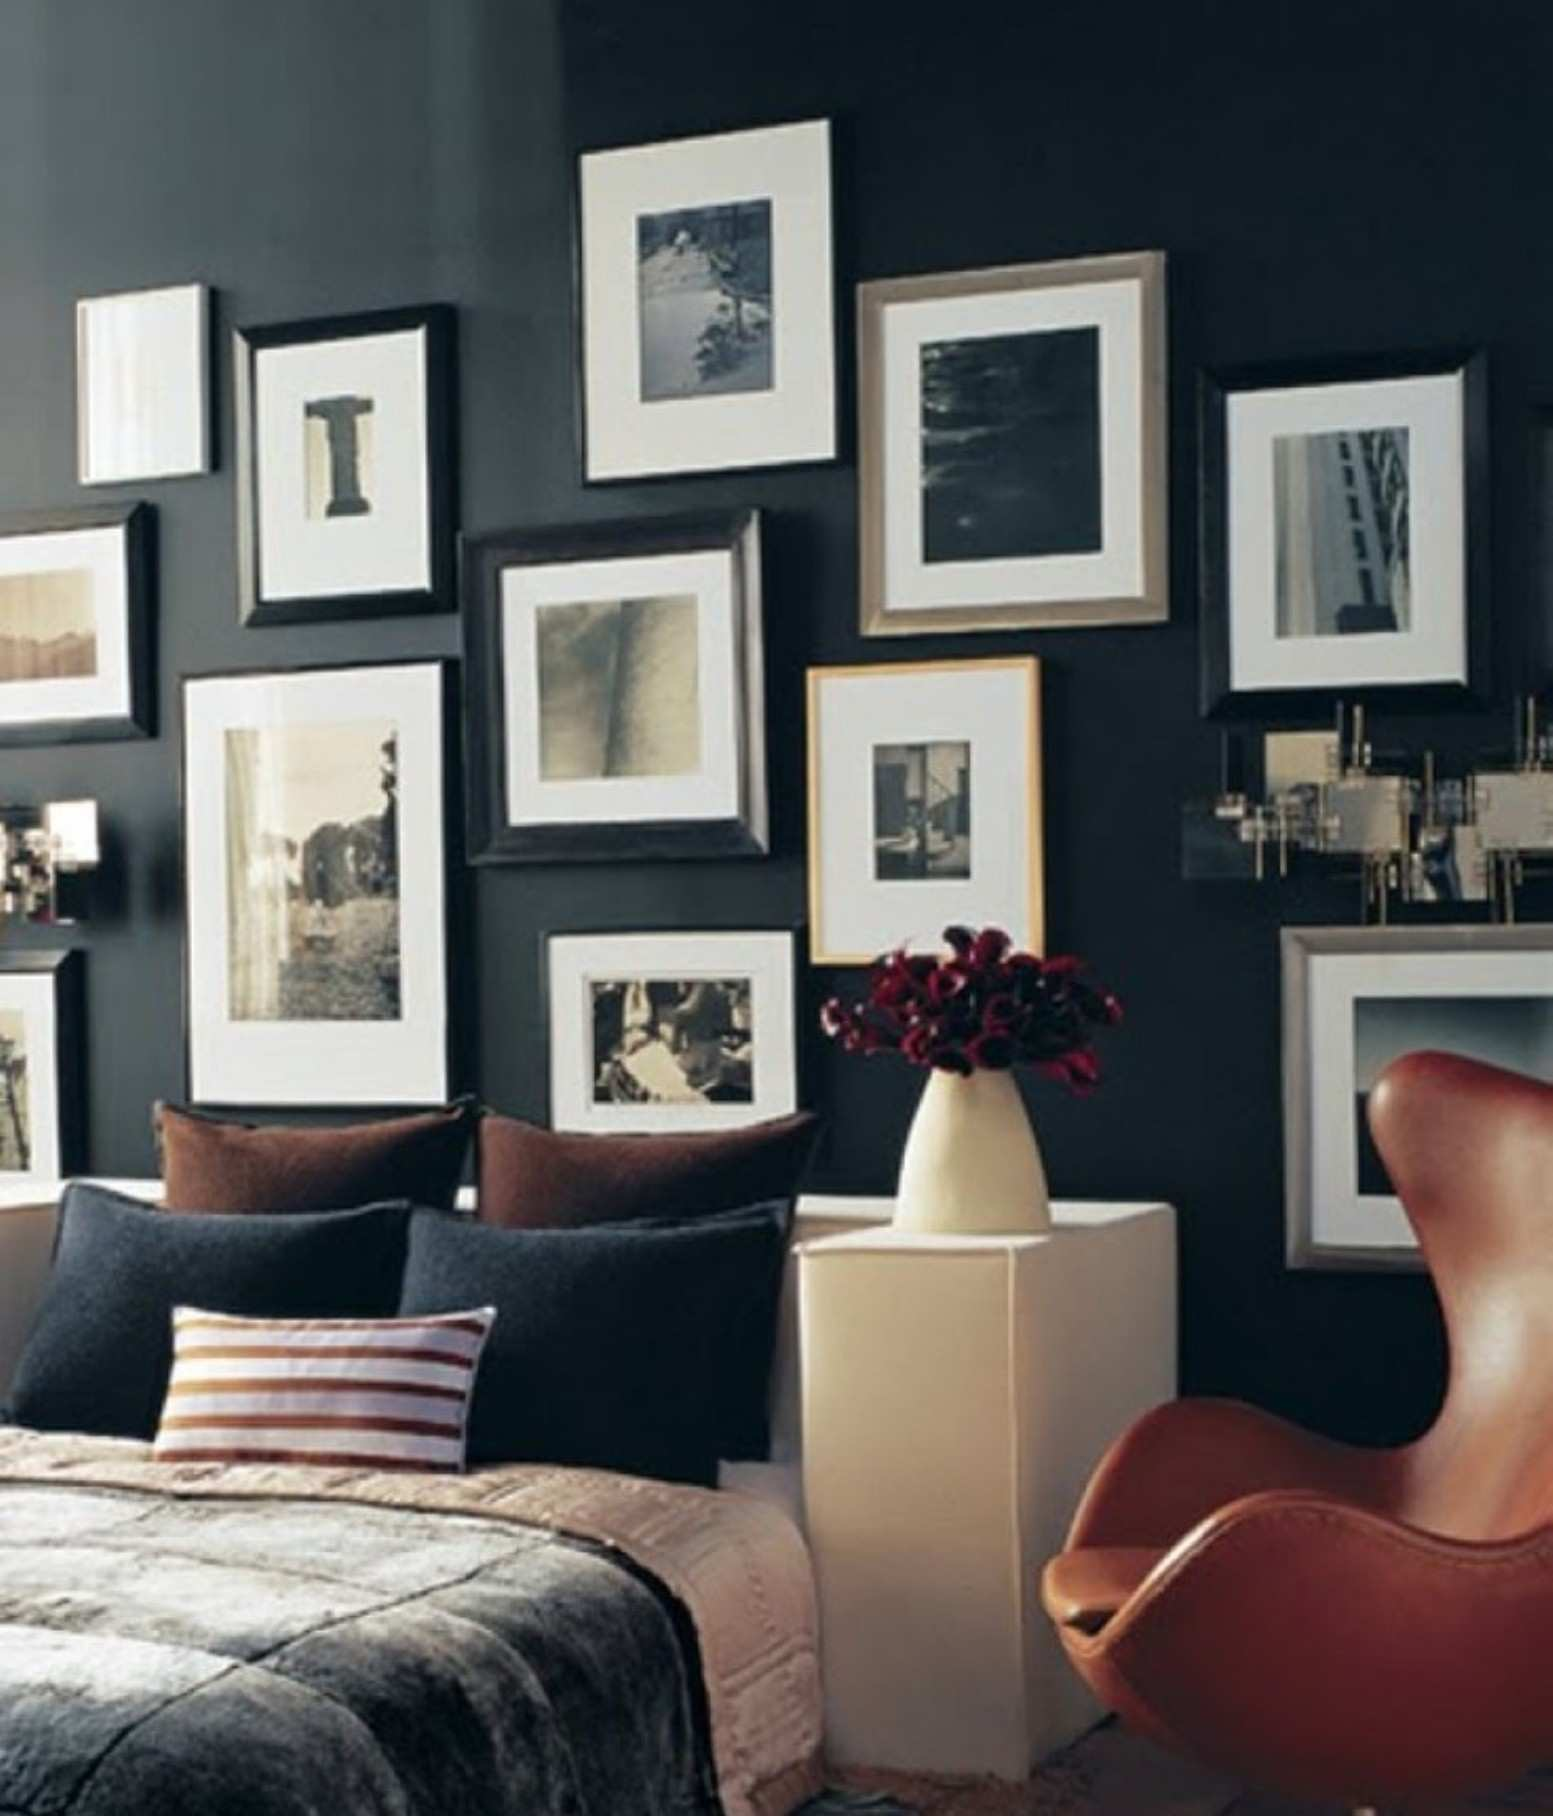 Picture Frame Designs On Walls Elegant Bedroom Ideas Picture Frames Visi Build 2017 with Black and White